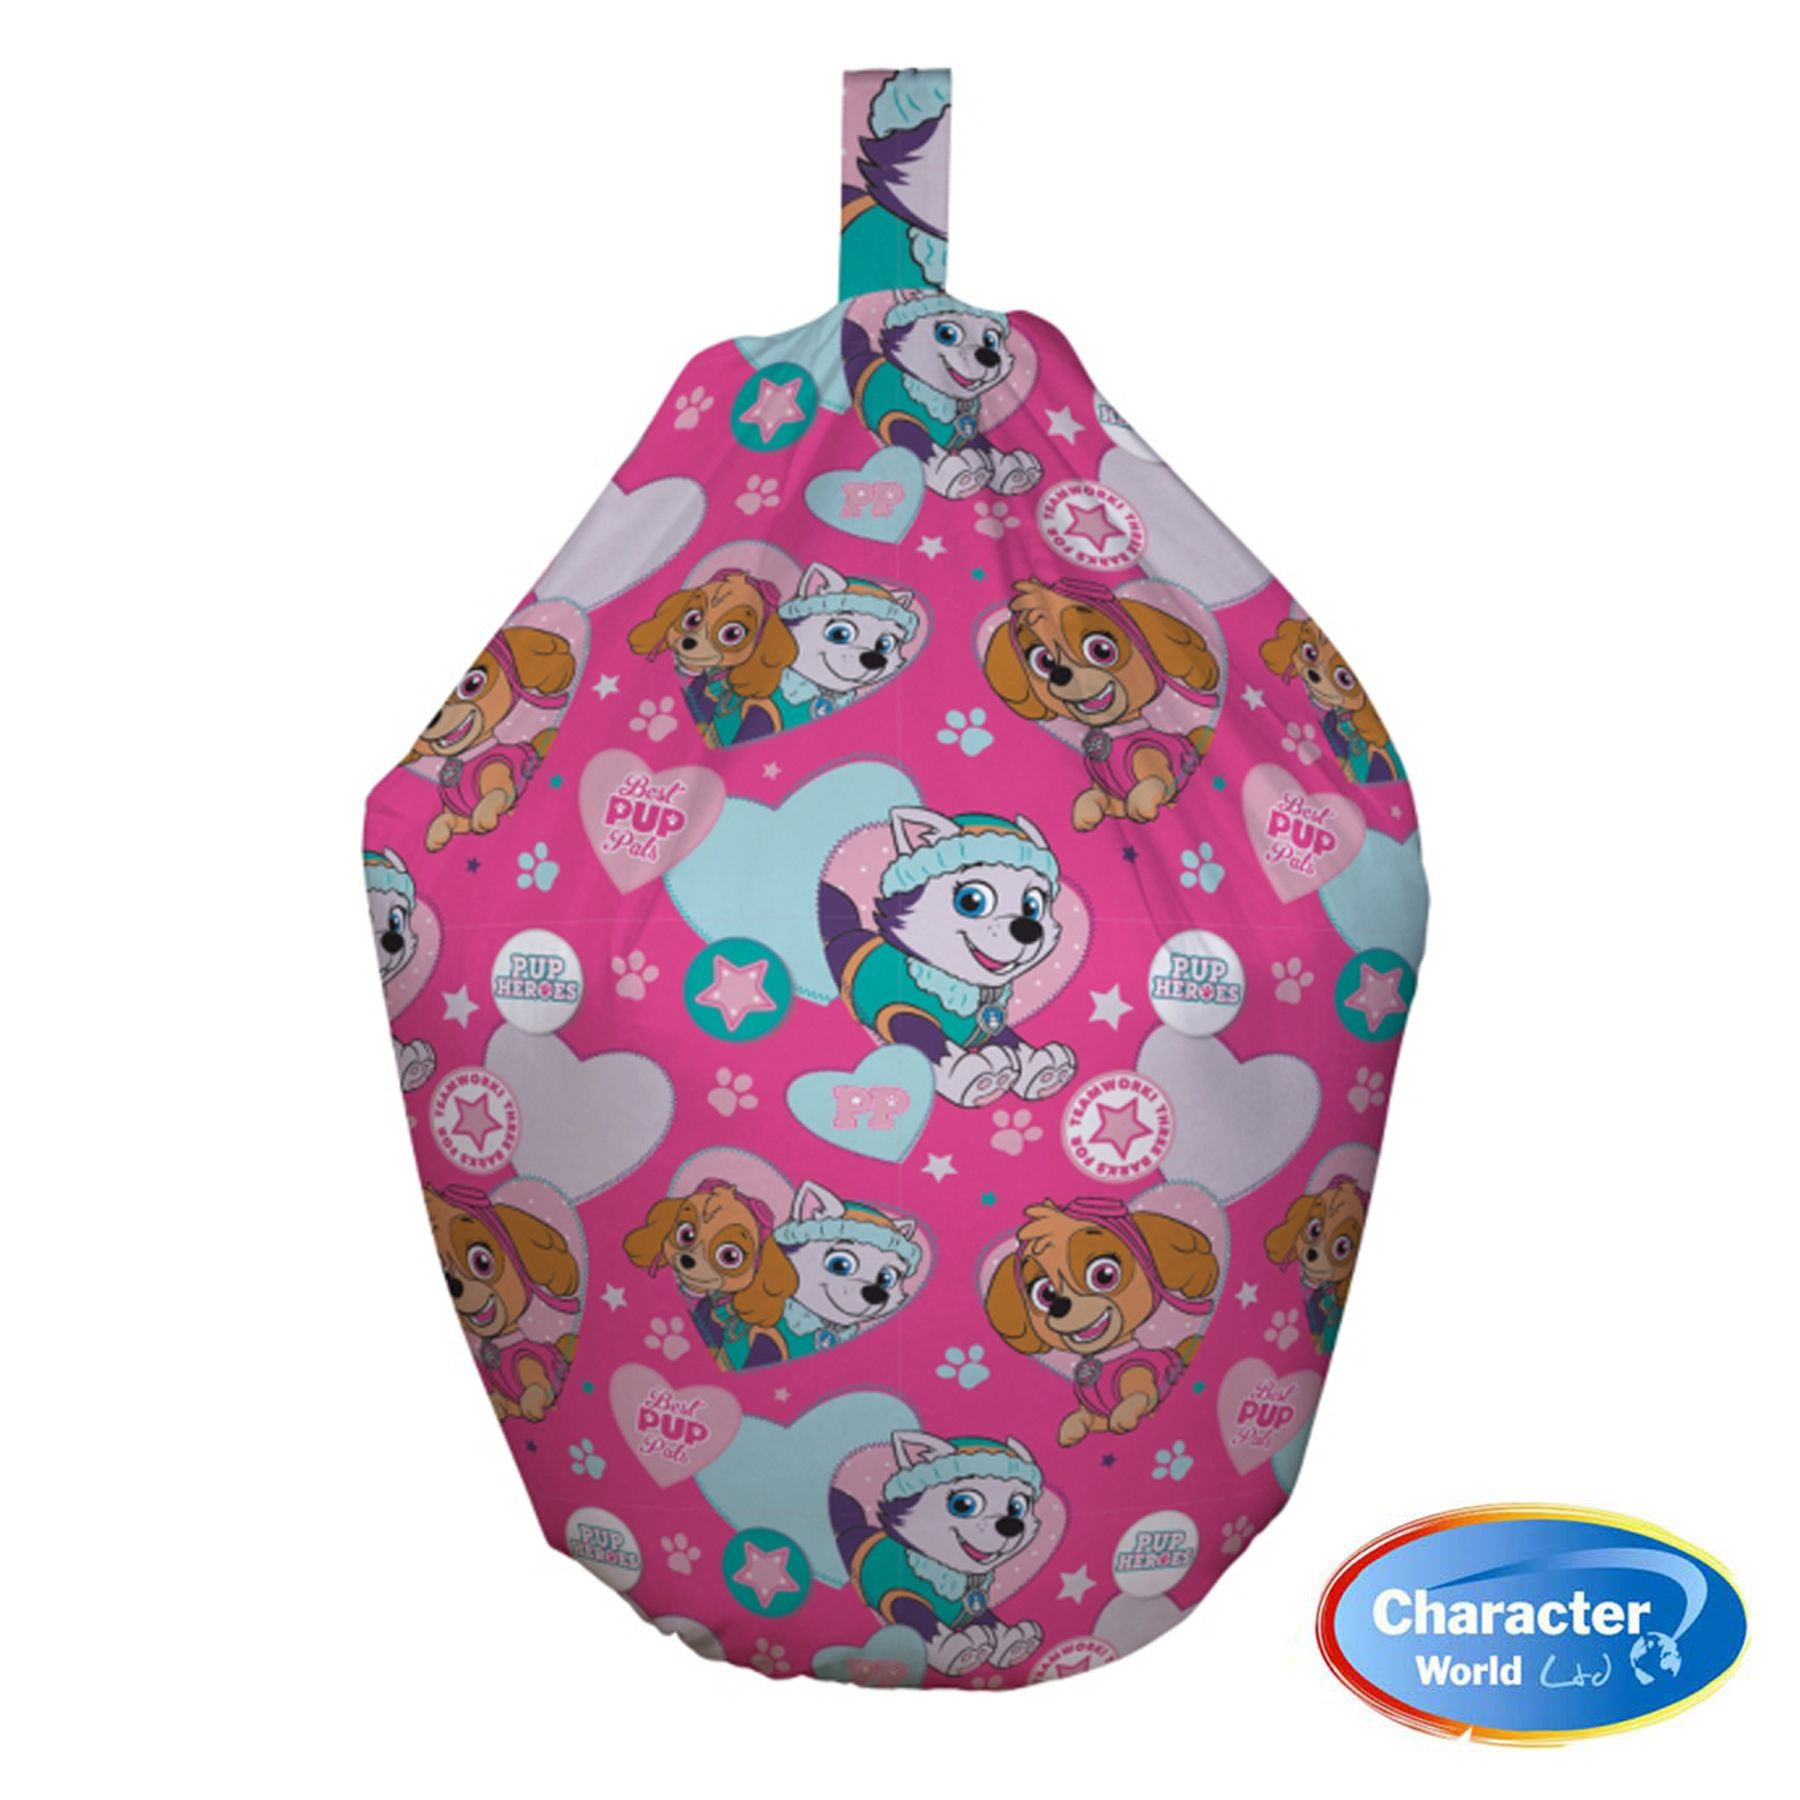 Our Pink Paw Patrol Pals Bean Bag Is An Officially Licensed